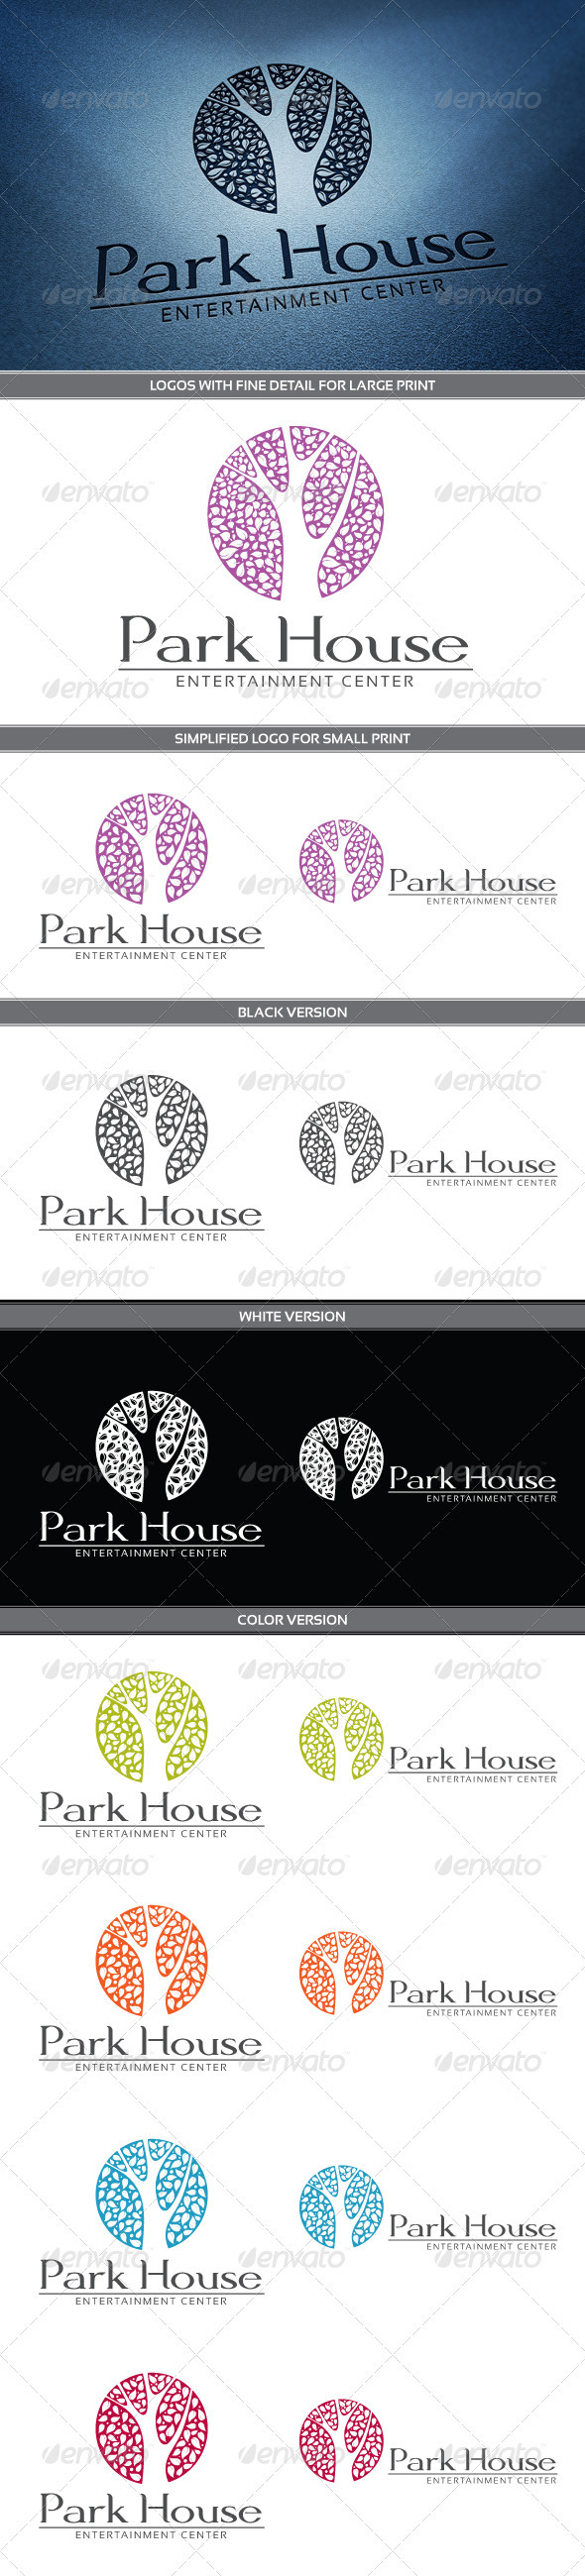 Park House Logo - Nature Logo Templates